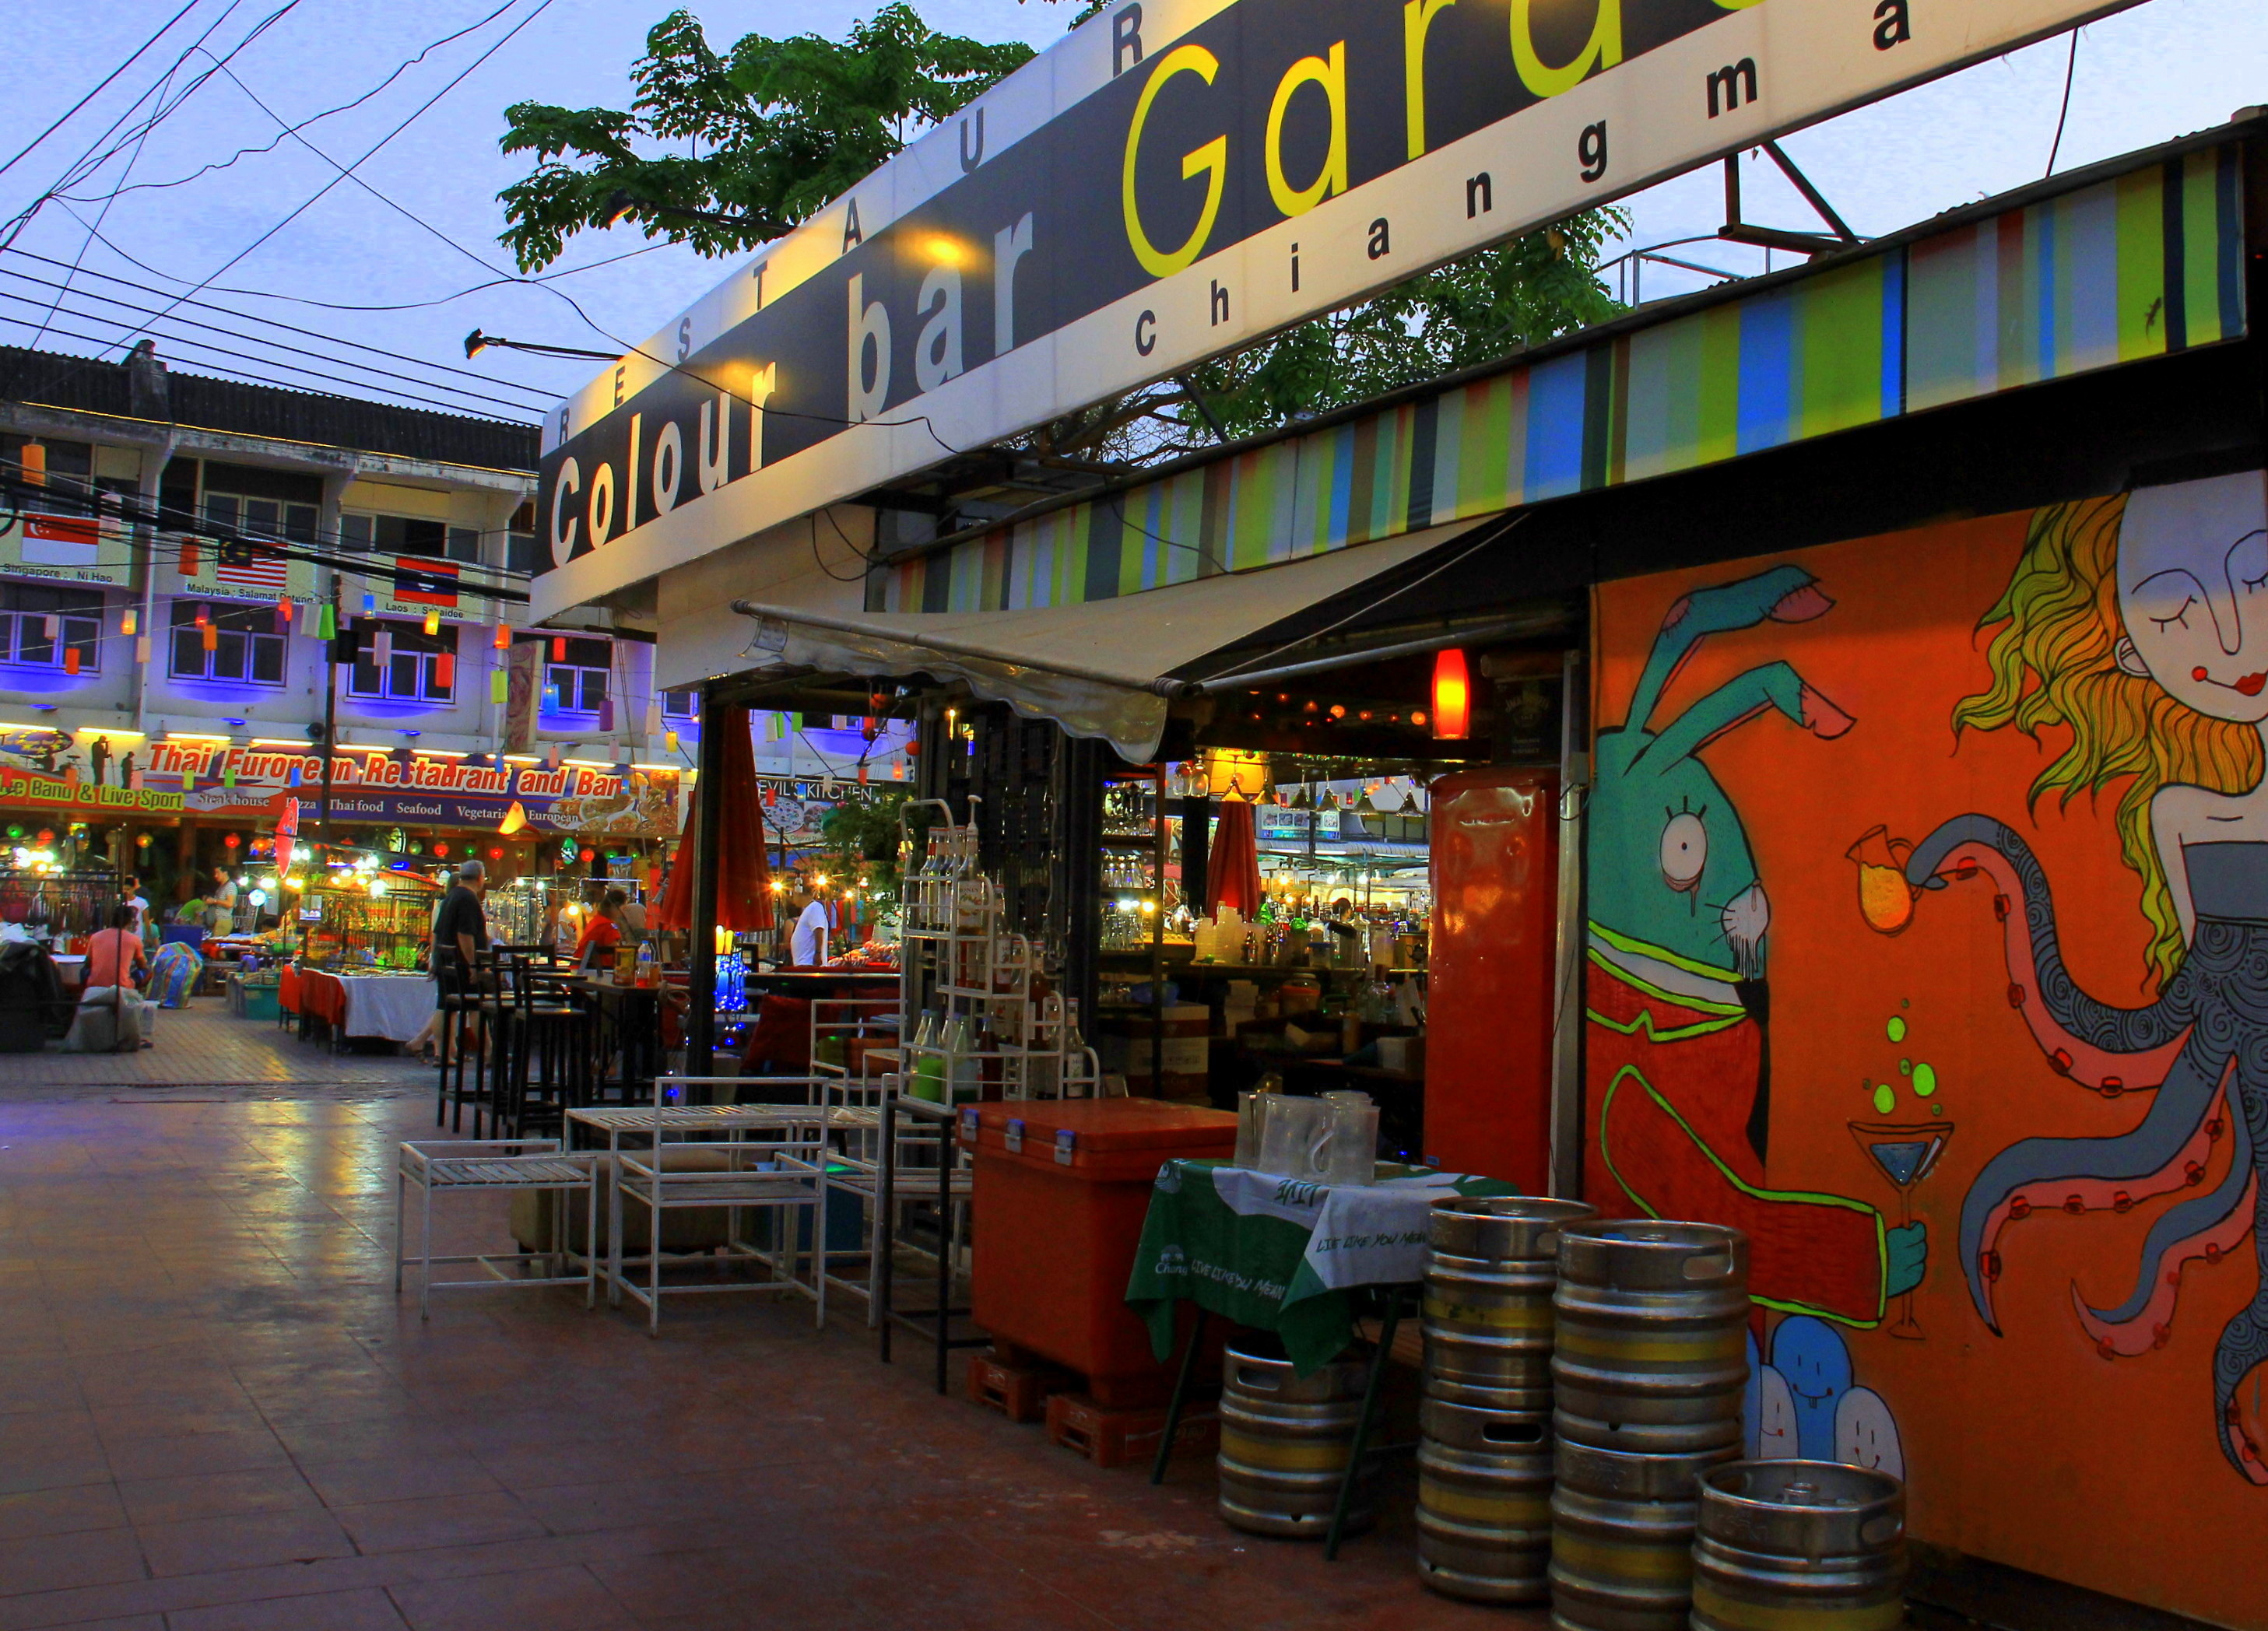 Chiang Mai things to do and what to avoid